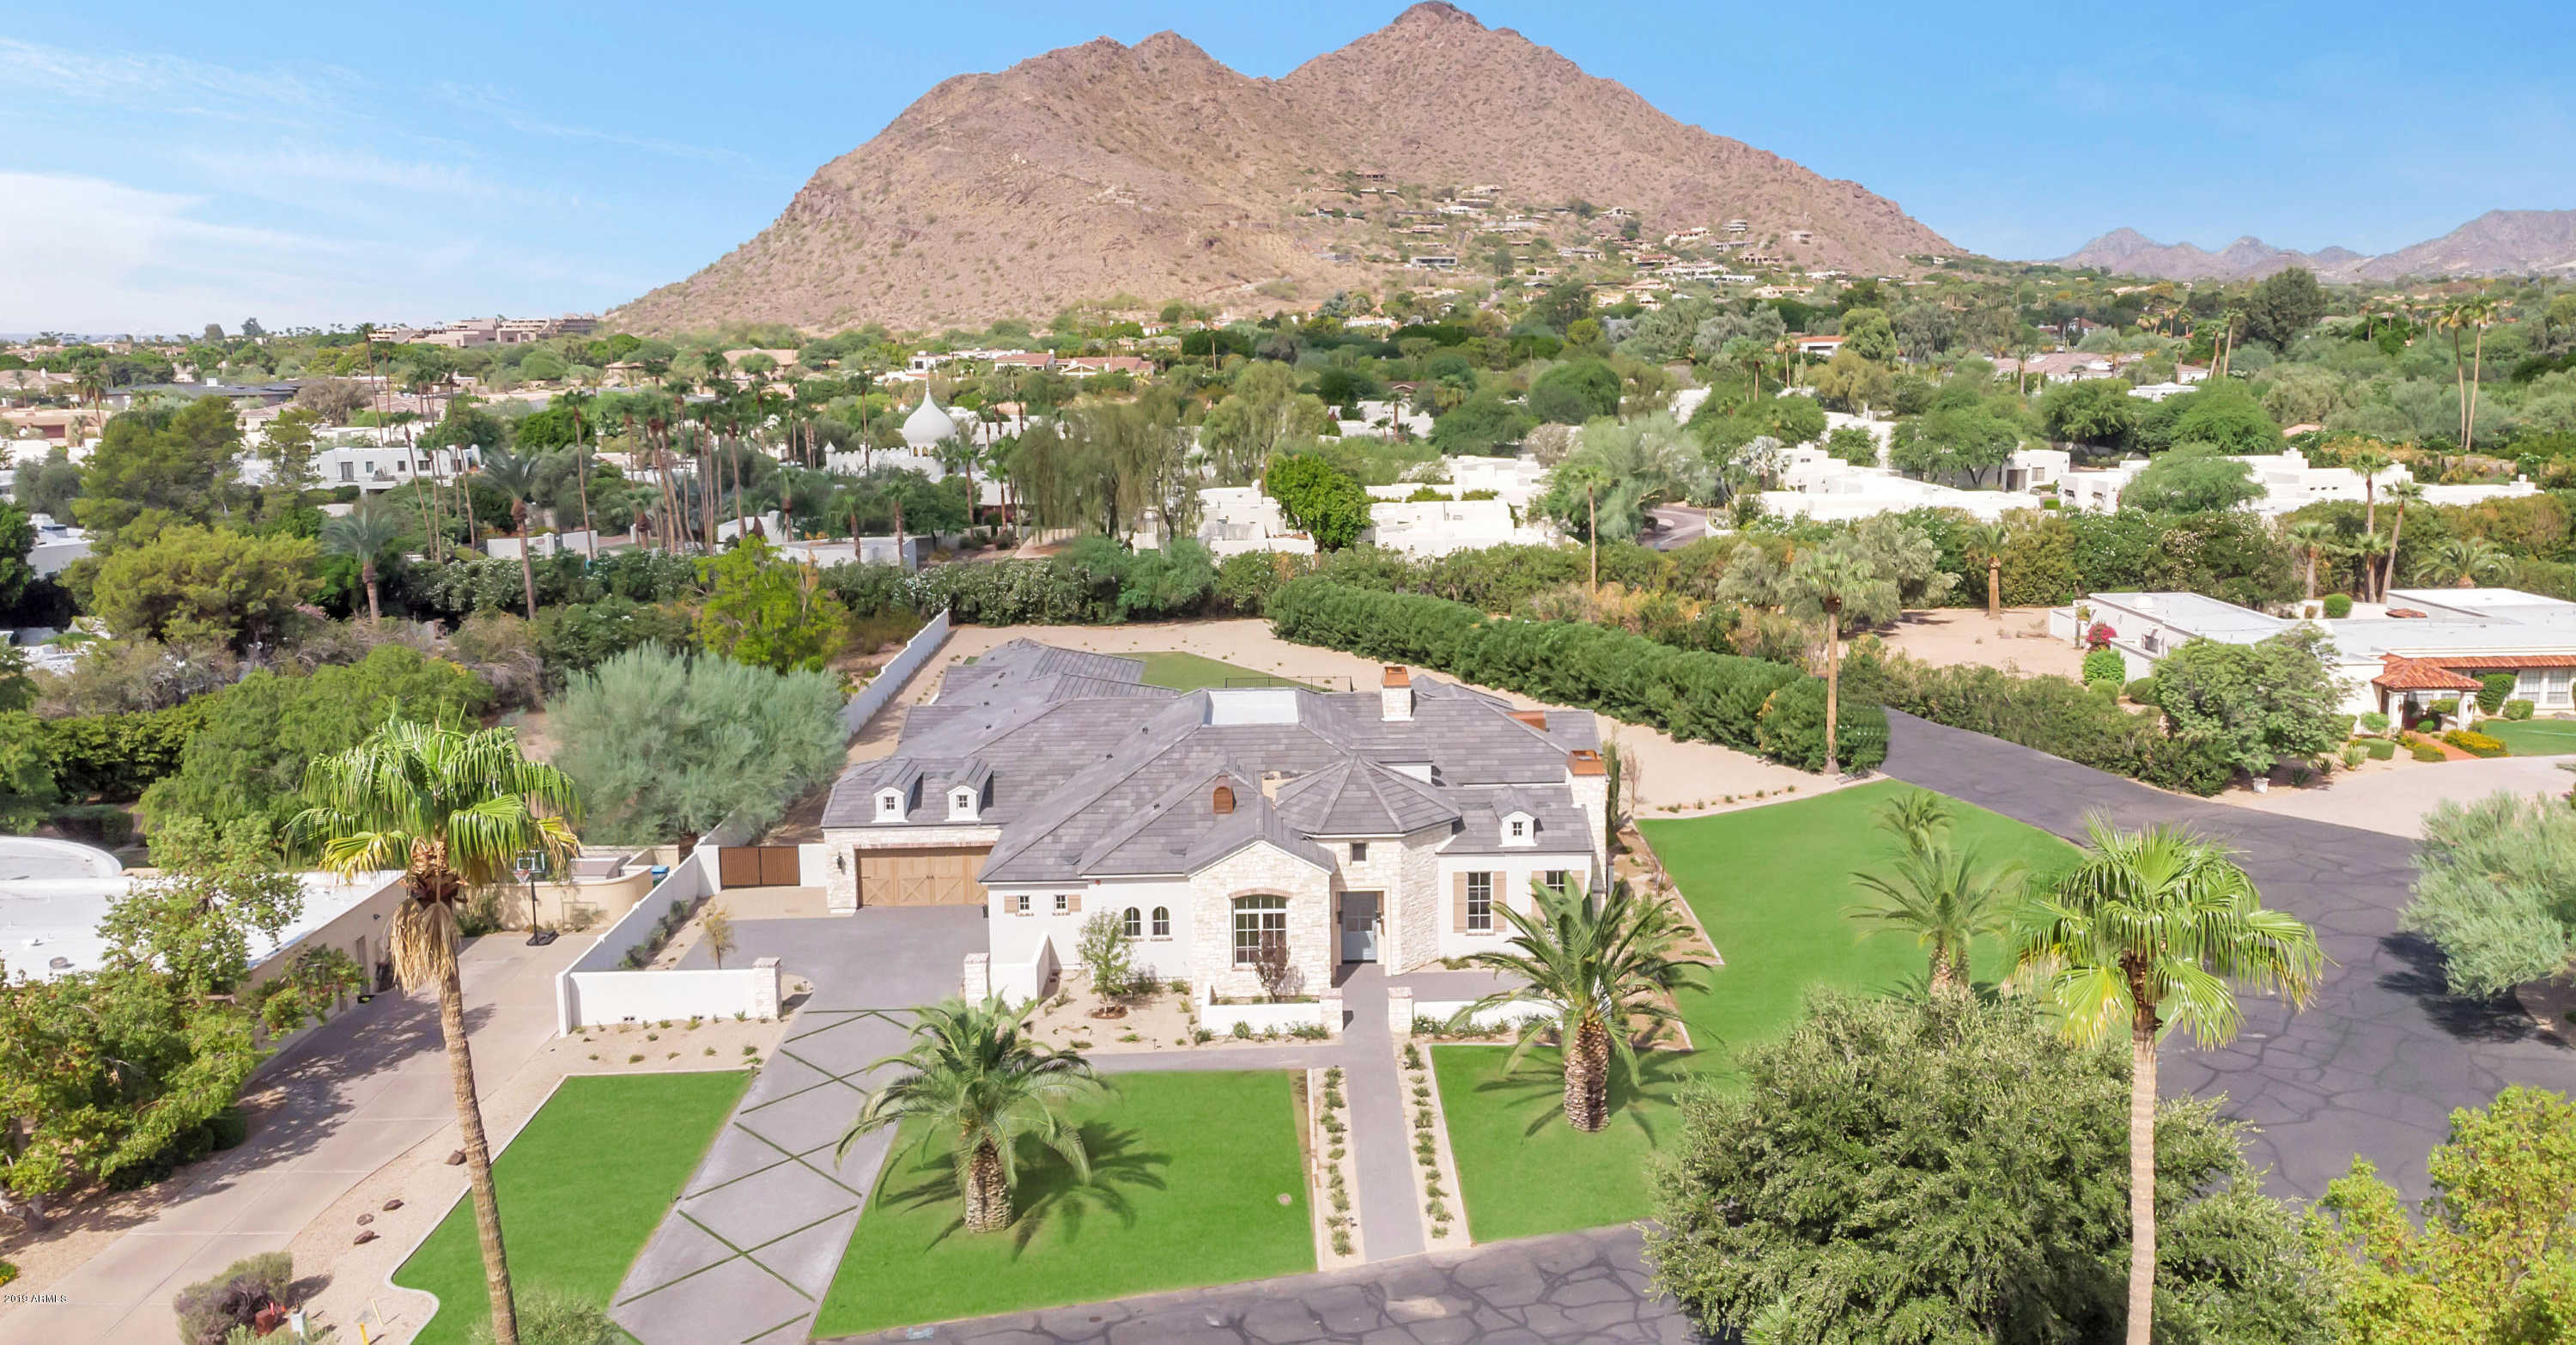 $4,450,000 - 5Br/7Ba - Home for Sale in Casa Blanca Estates Lot 20-37 & Tr A, Paradise Valley